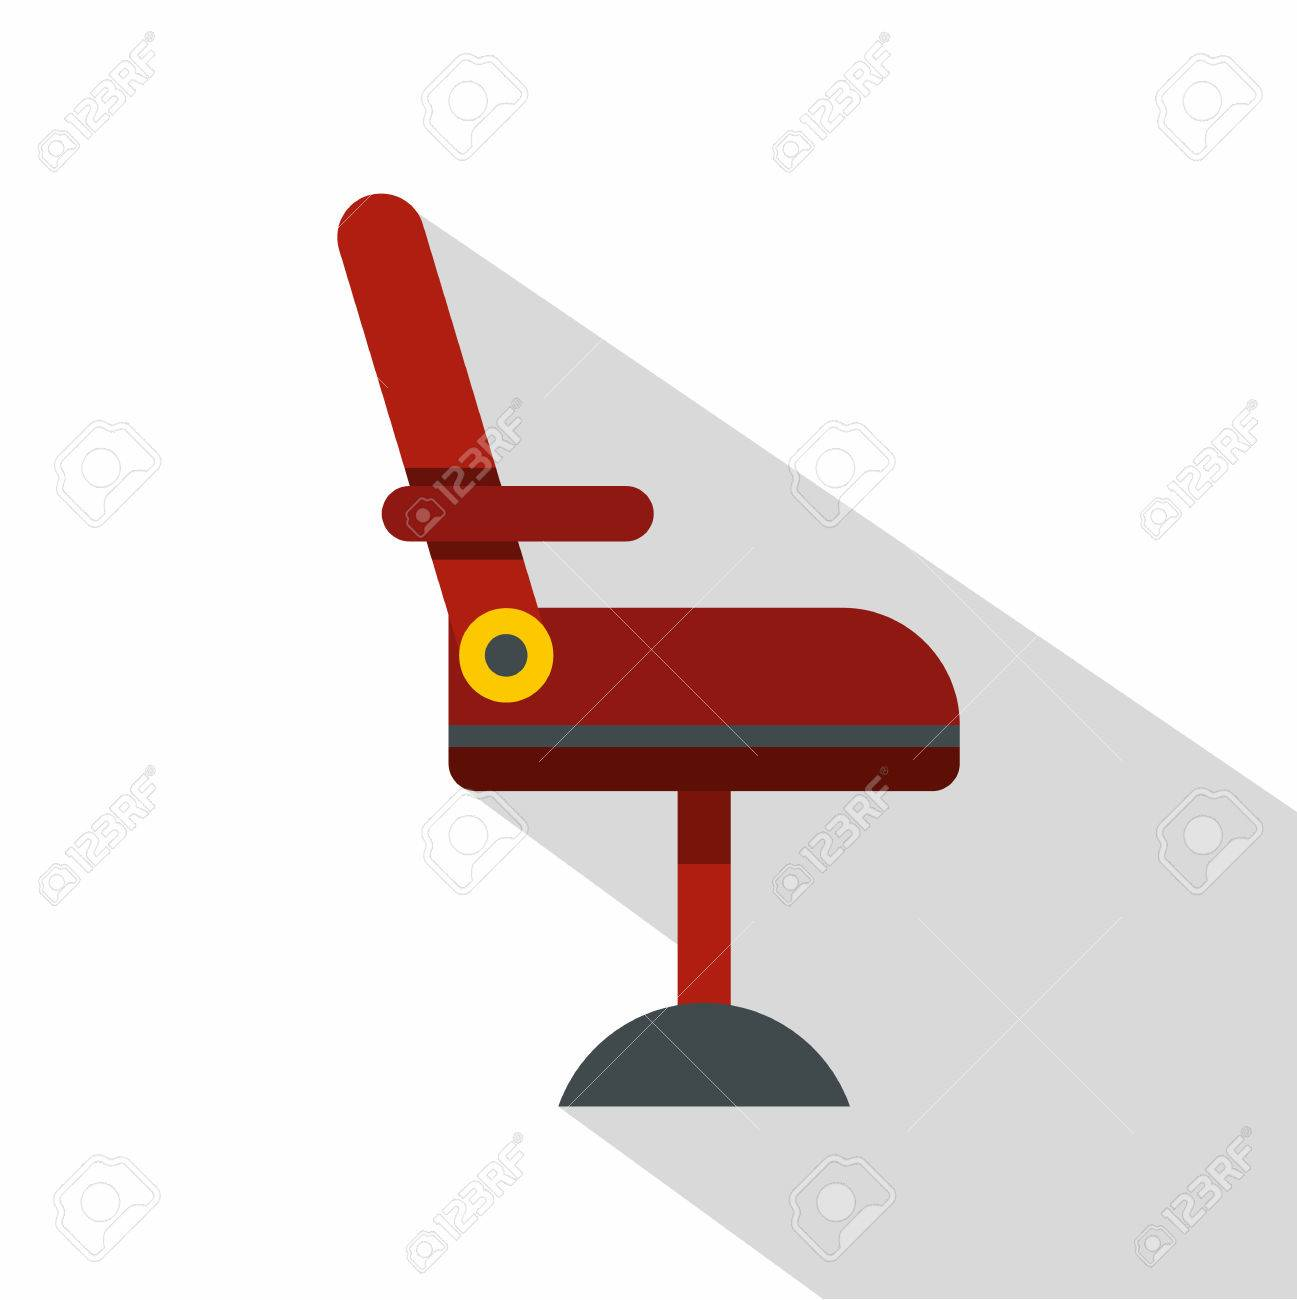 Barber chair vector - Red Barber Chair Icon Flat Illustration Of Red Barber Chair Vector Icon For Web Isolated